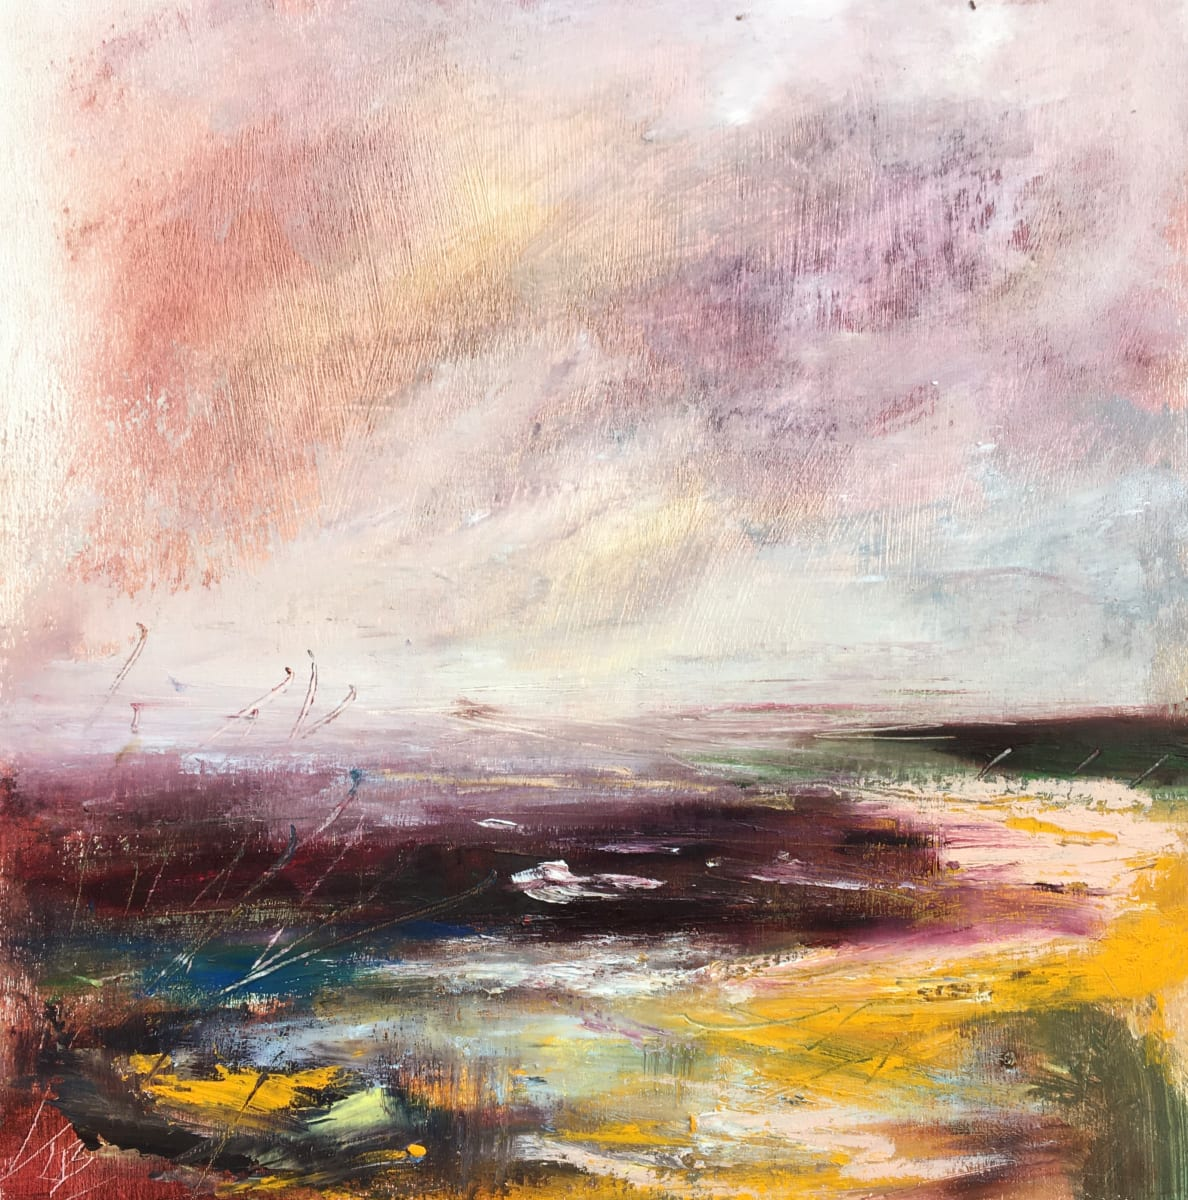 Spring Yellow Shore by Lesley Birch